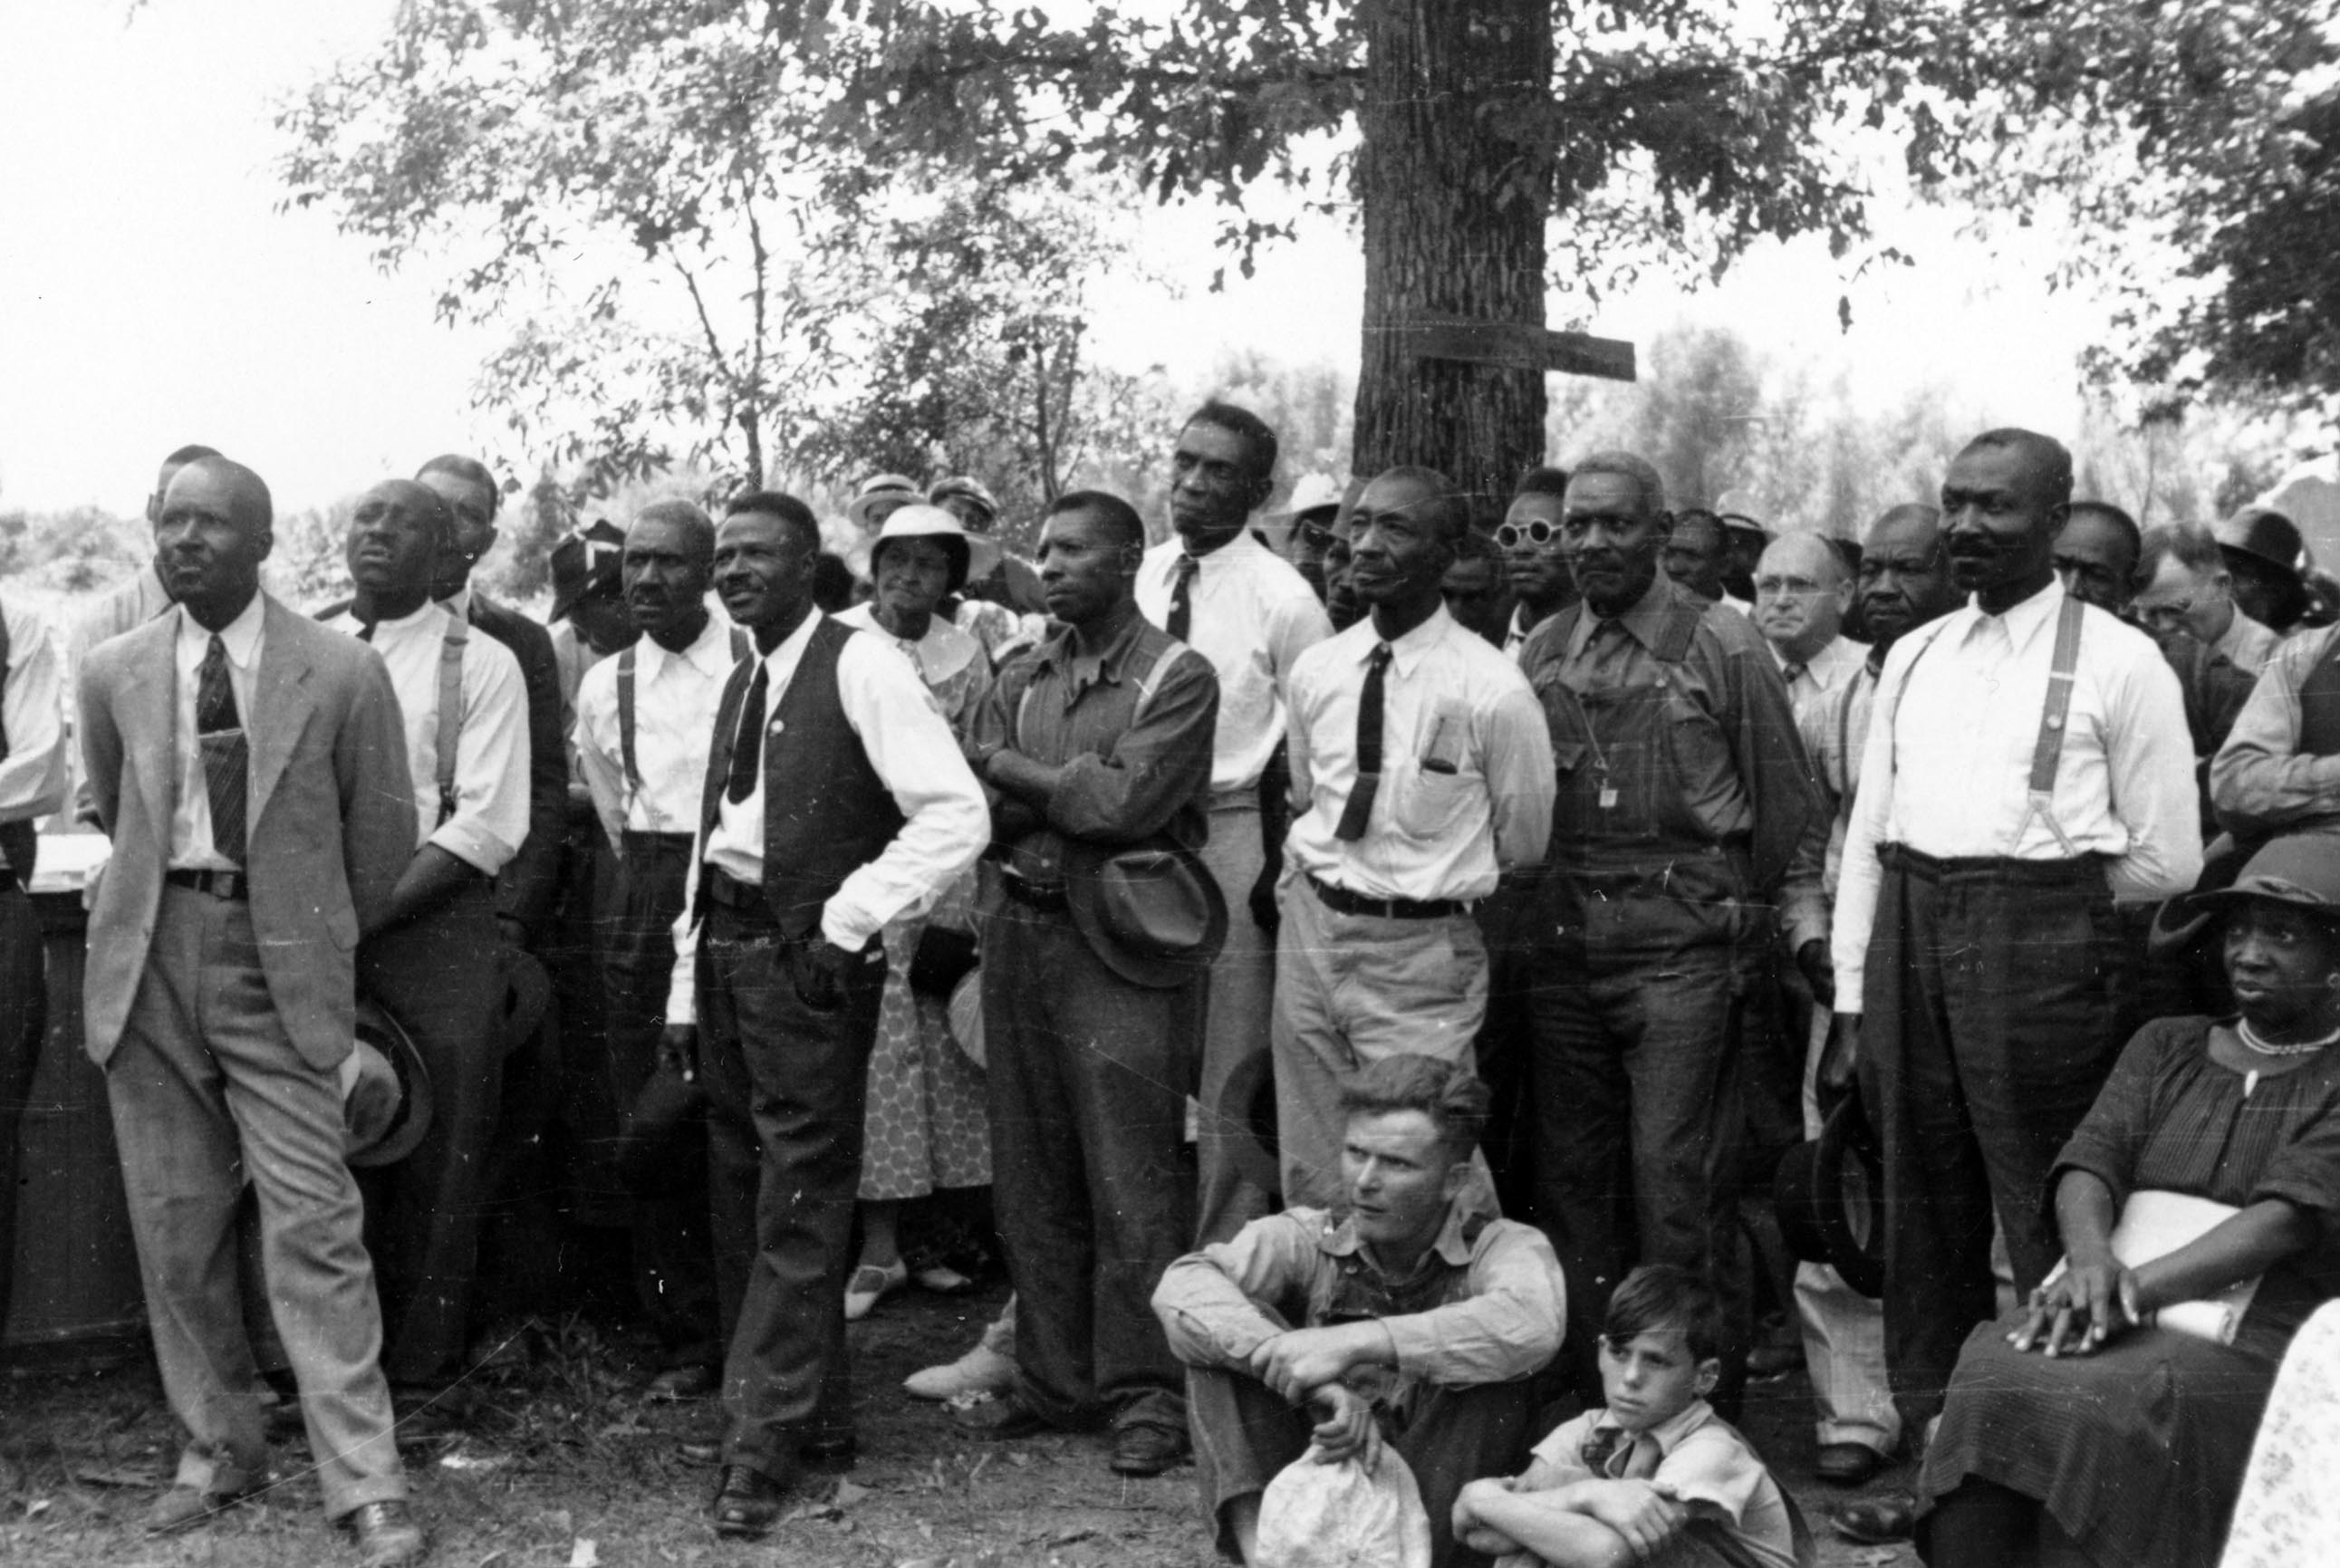 Southern Tenant Farmers' Union: Black and White Unite? (Teaching Activity) | Zinn Education Project: Teaching People's History